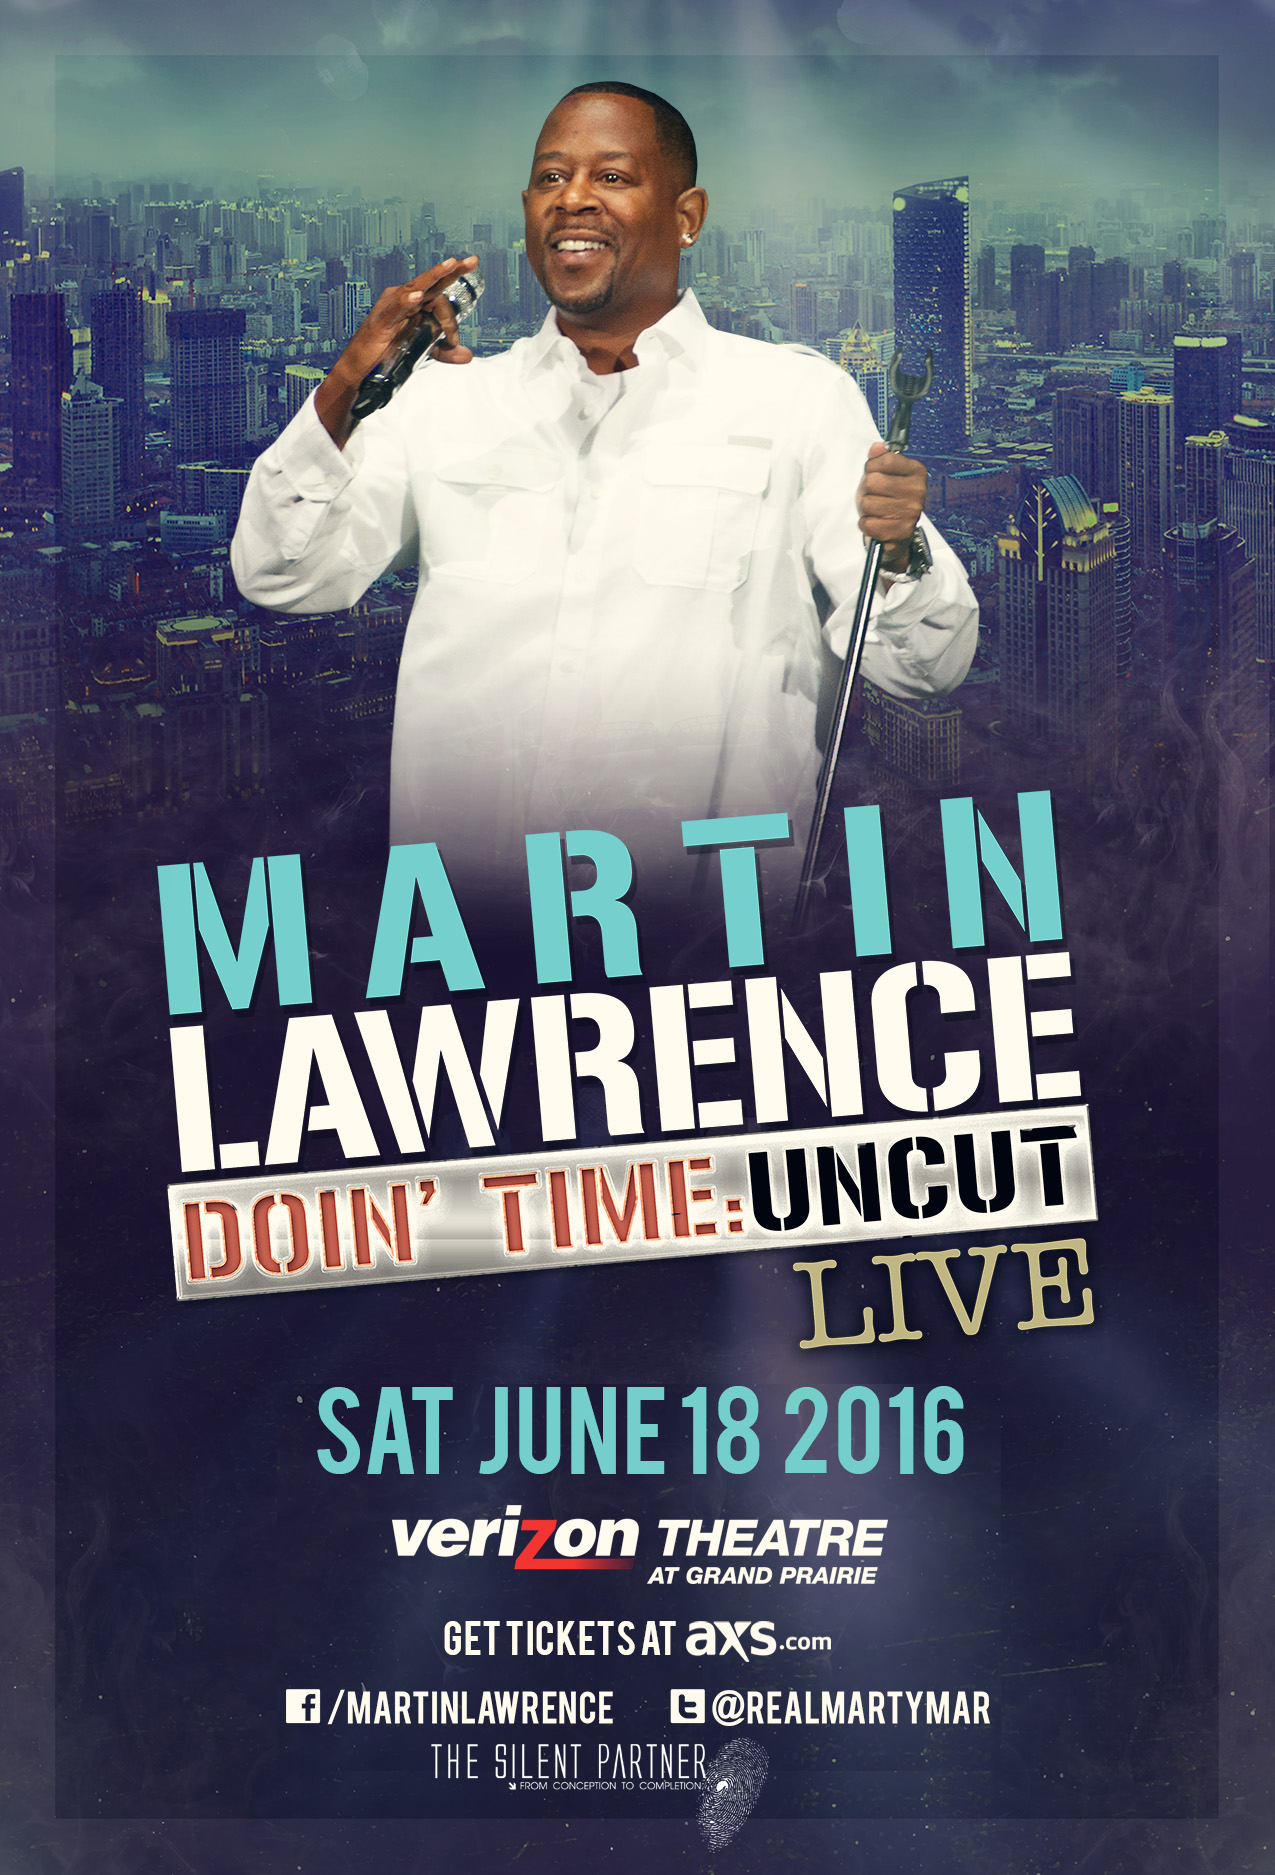 MartinLawrence_4x6_Flyer_Dallas.eps